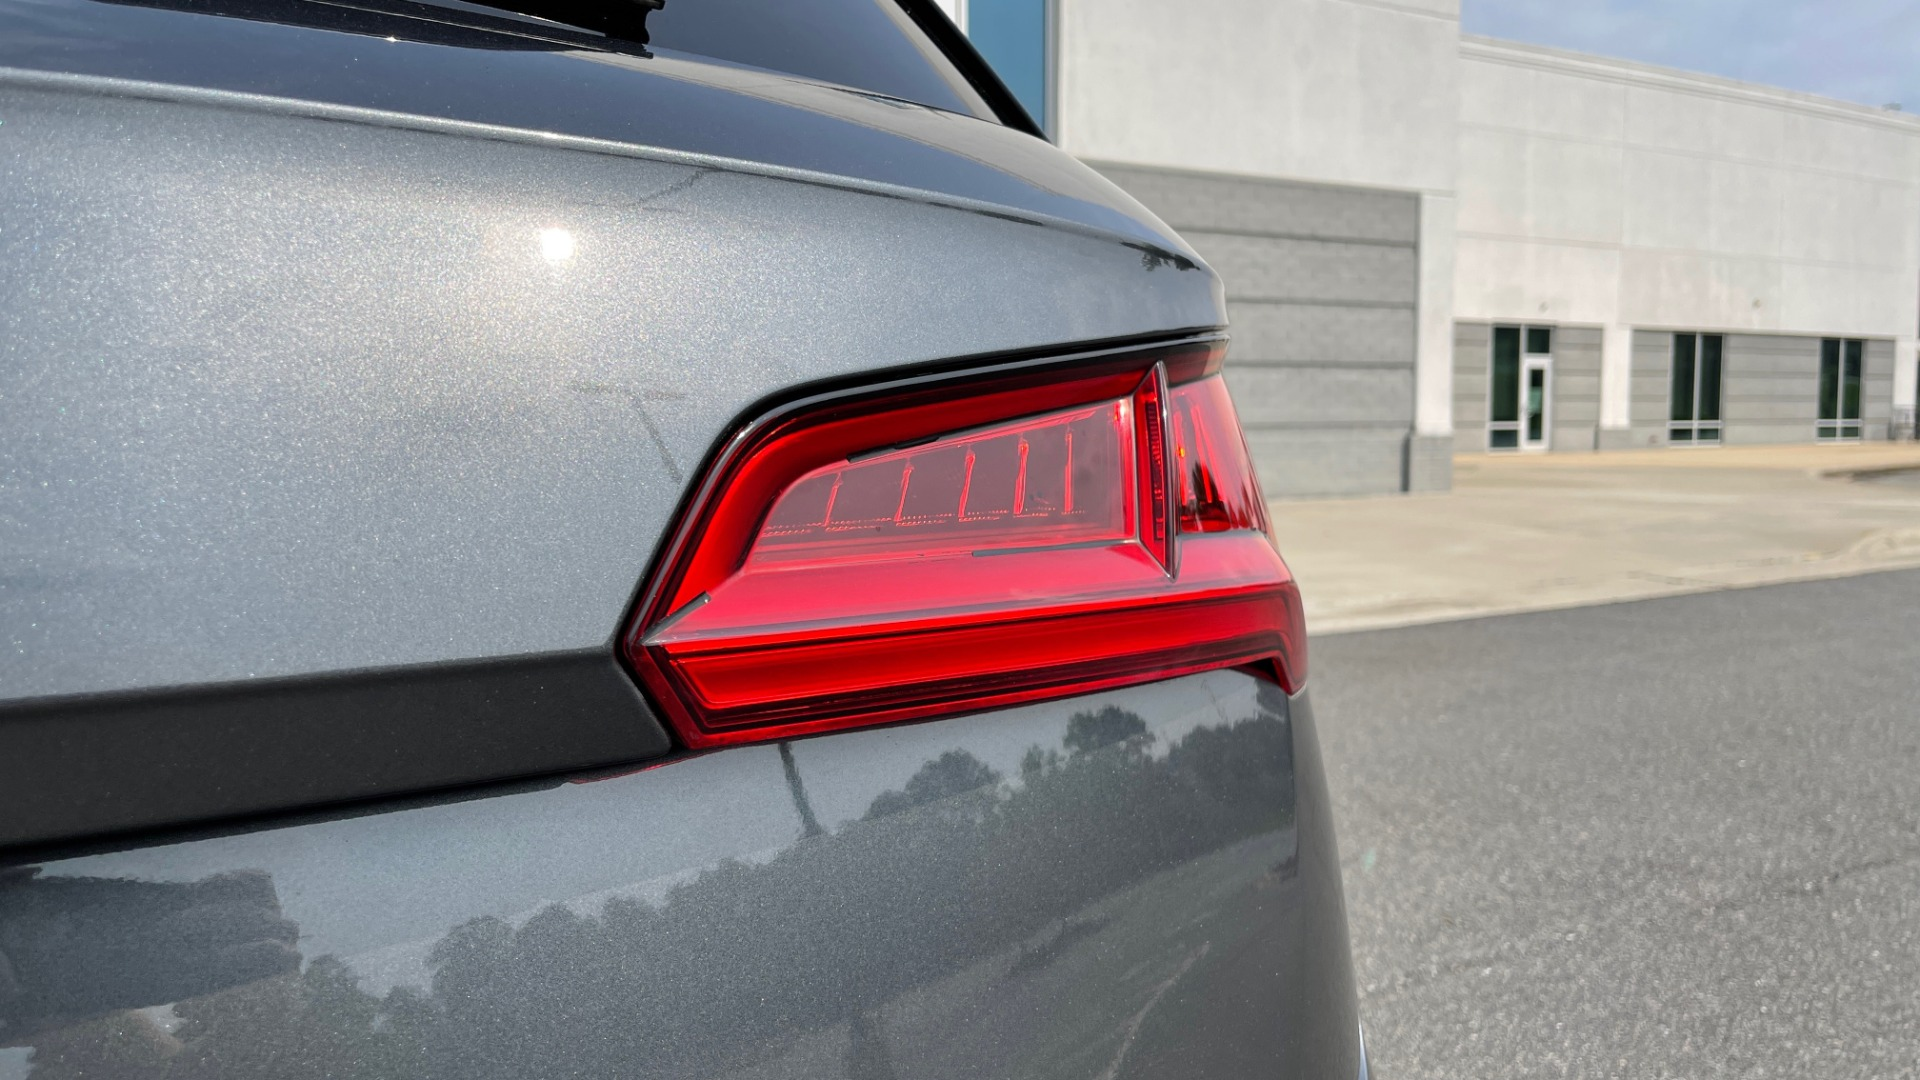 Used 2018 Audi SQ5 PREMIUM PLUS / S-SPORT / NAV / B&O SND / SUNROOF / REARVIEW for sale $43,995 at Formula Imports in Charlotte NC 28227 24